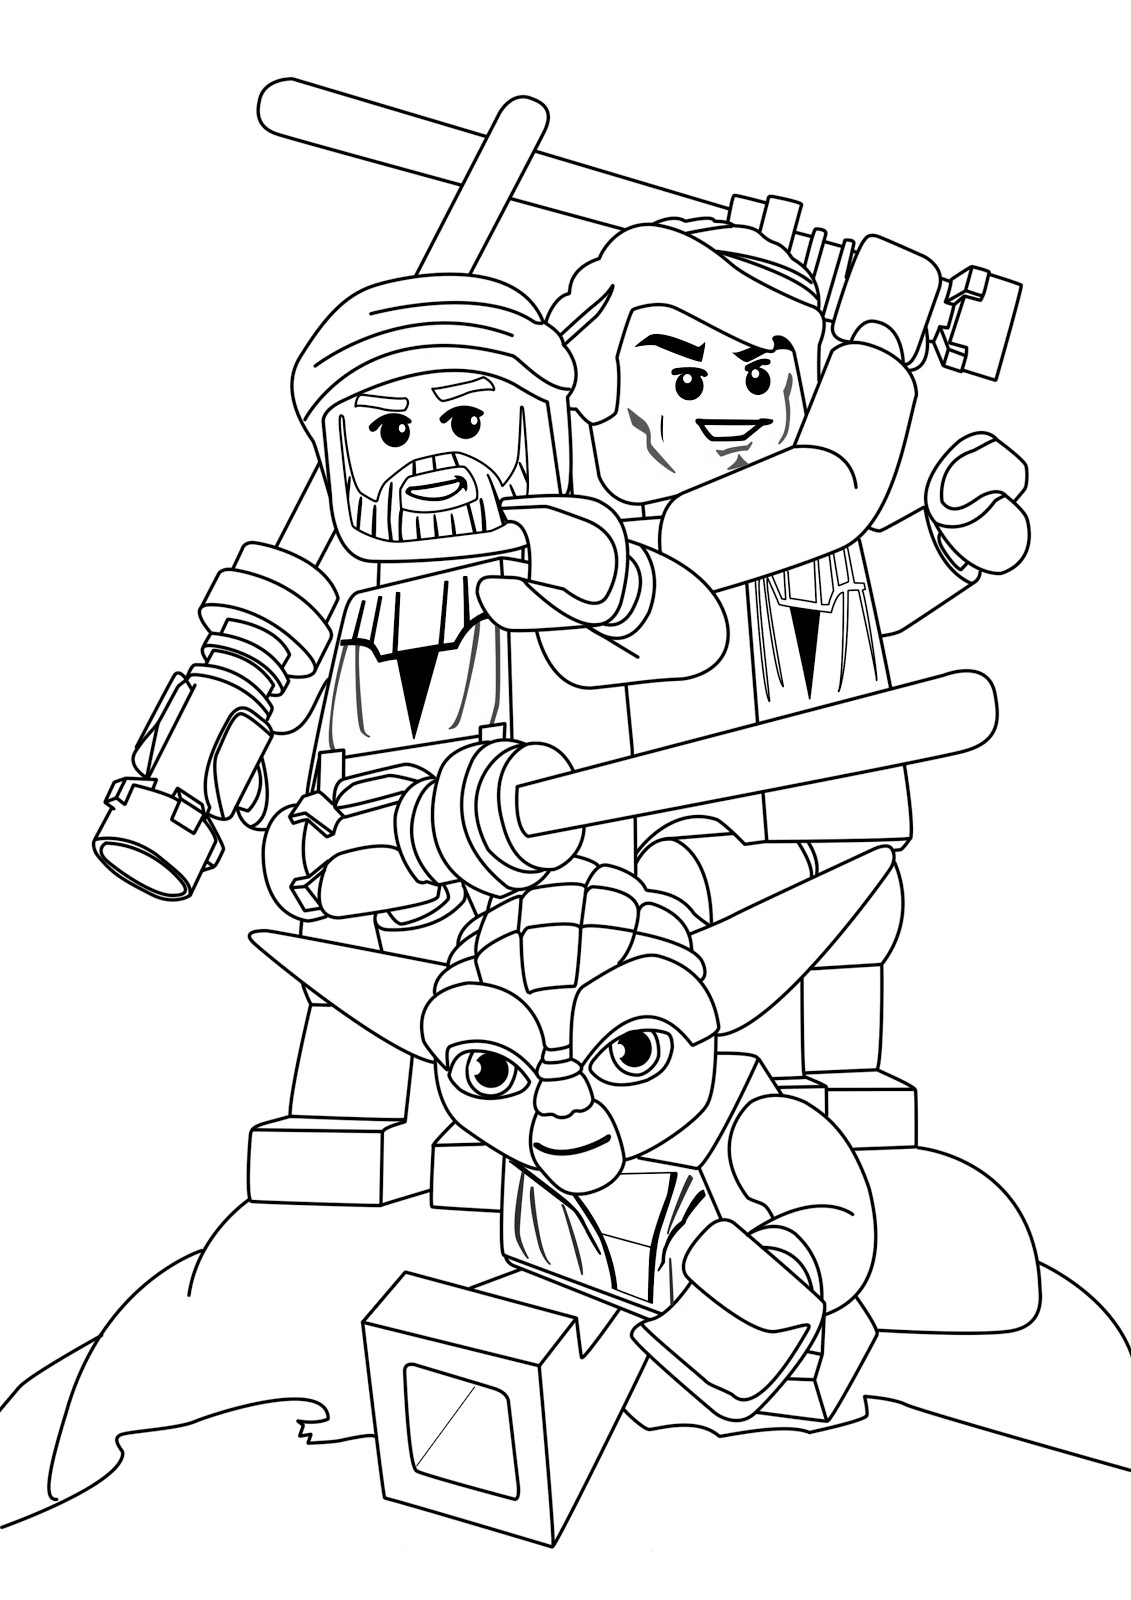 lego star wars printable coloring pages free coloring pages of lego birthday card coloring pages lego pages star coloring wars printable